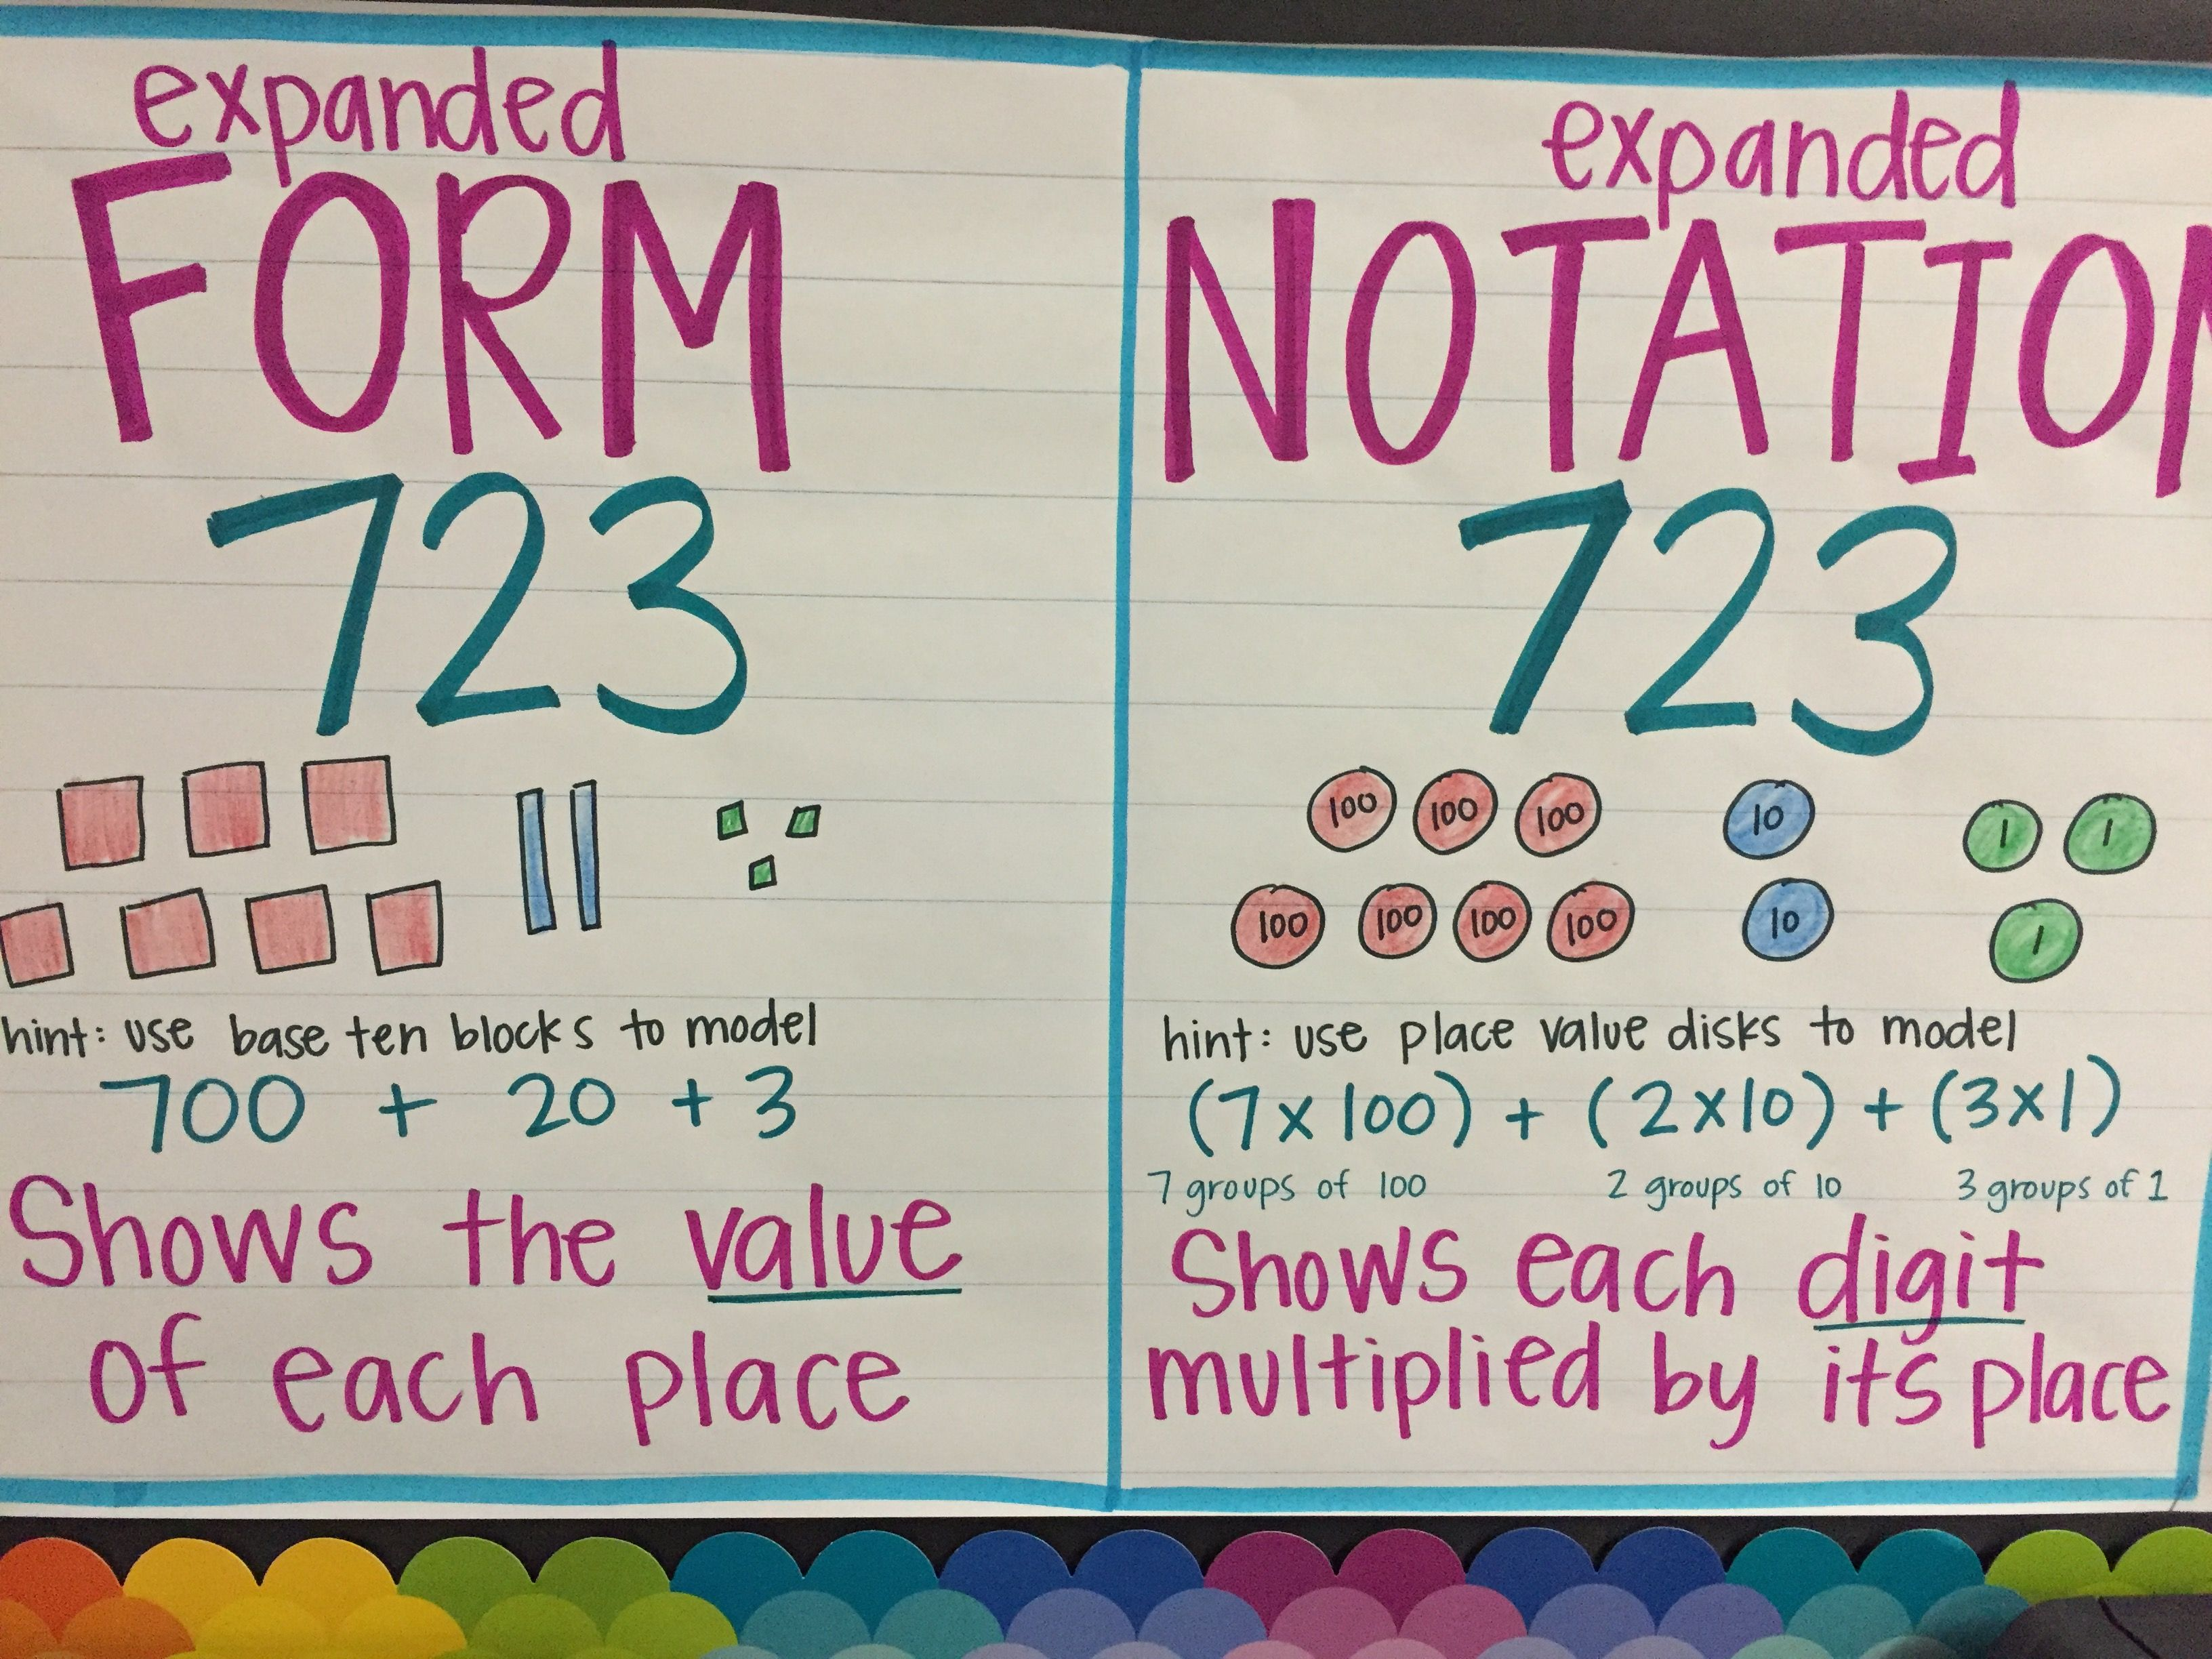 Expanded Form Expanded Notation